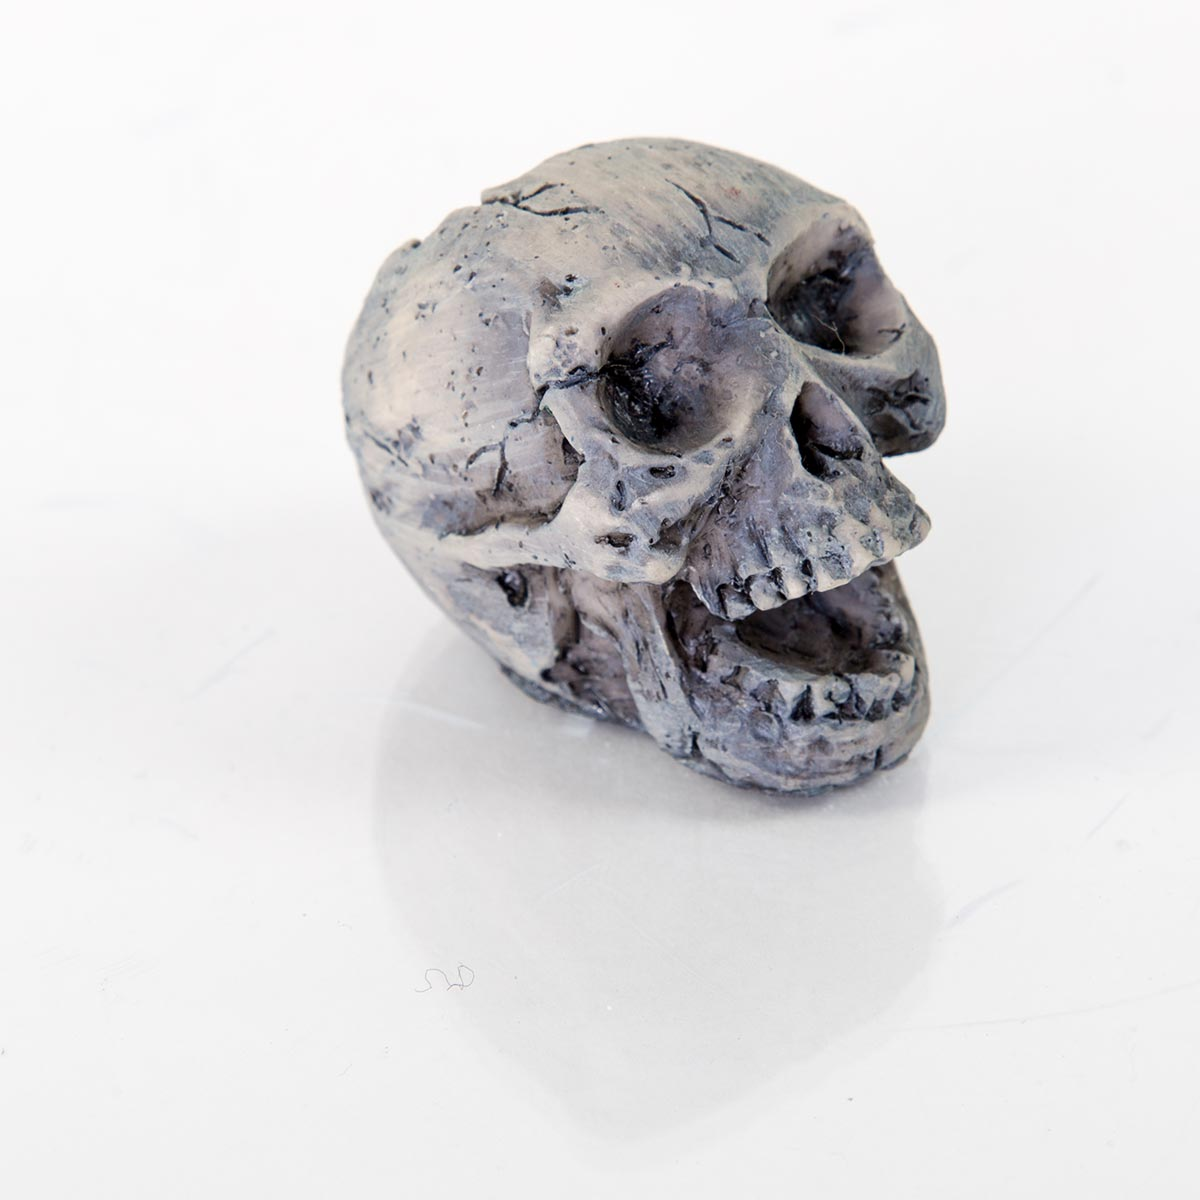 Decorative Human Skull 60132100